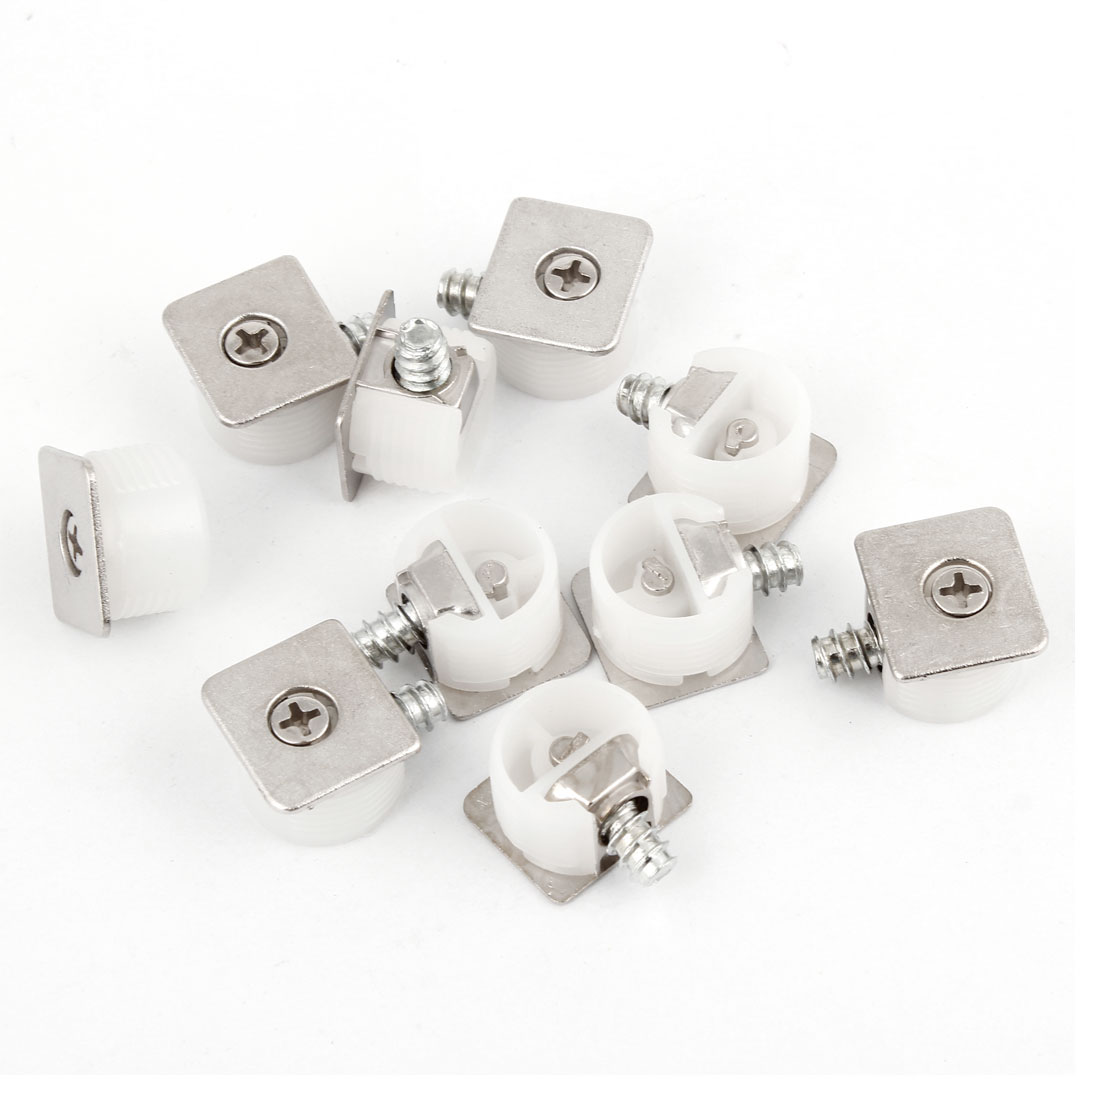 10 Pcs Concealed Mounting Board Plastic Bracket Shelf Support White